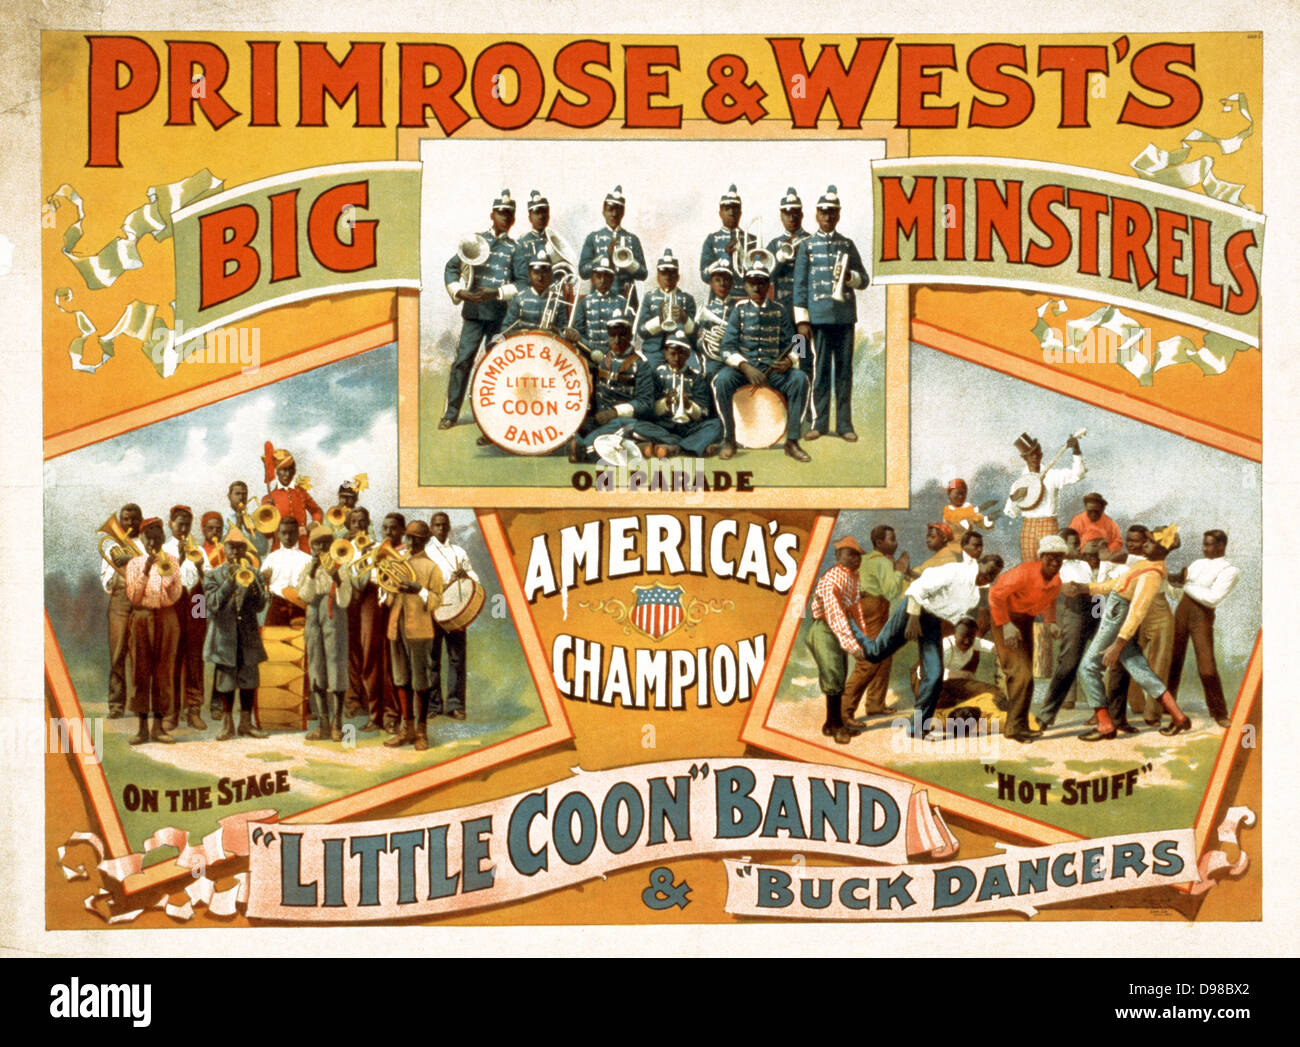 late 19th Century Theatre or Music Hall poster (American) depicting Primrose & West's Big Minstrels Band. - Stock Image